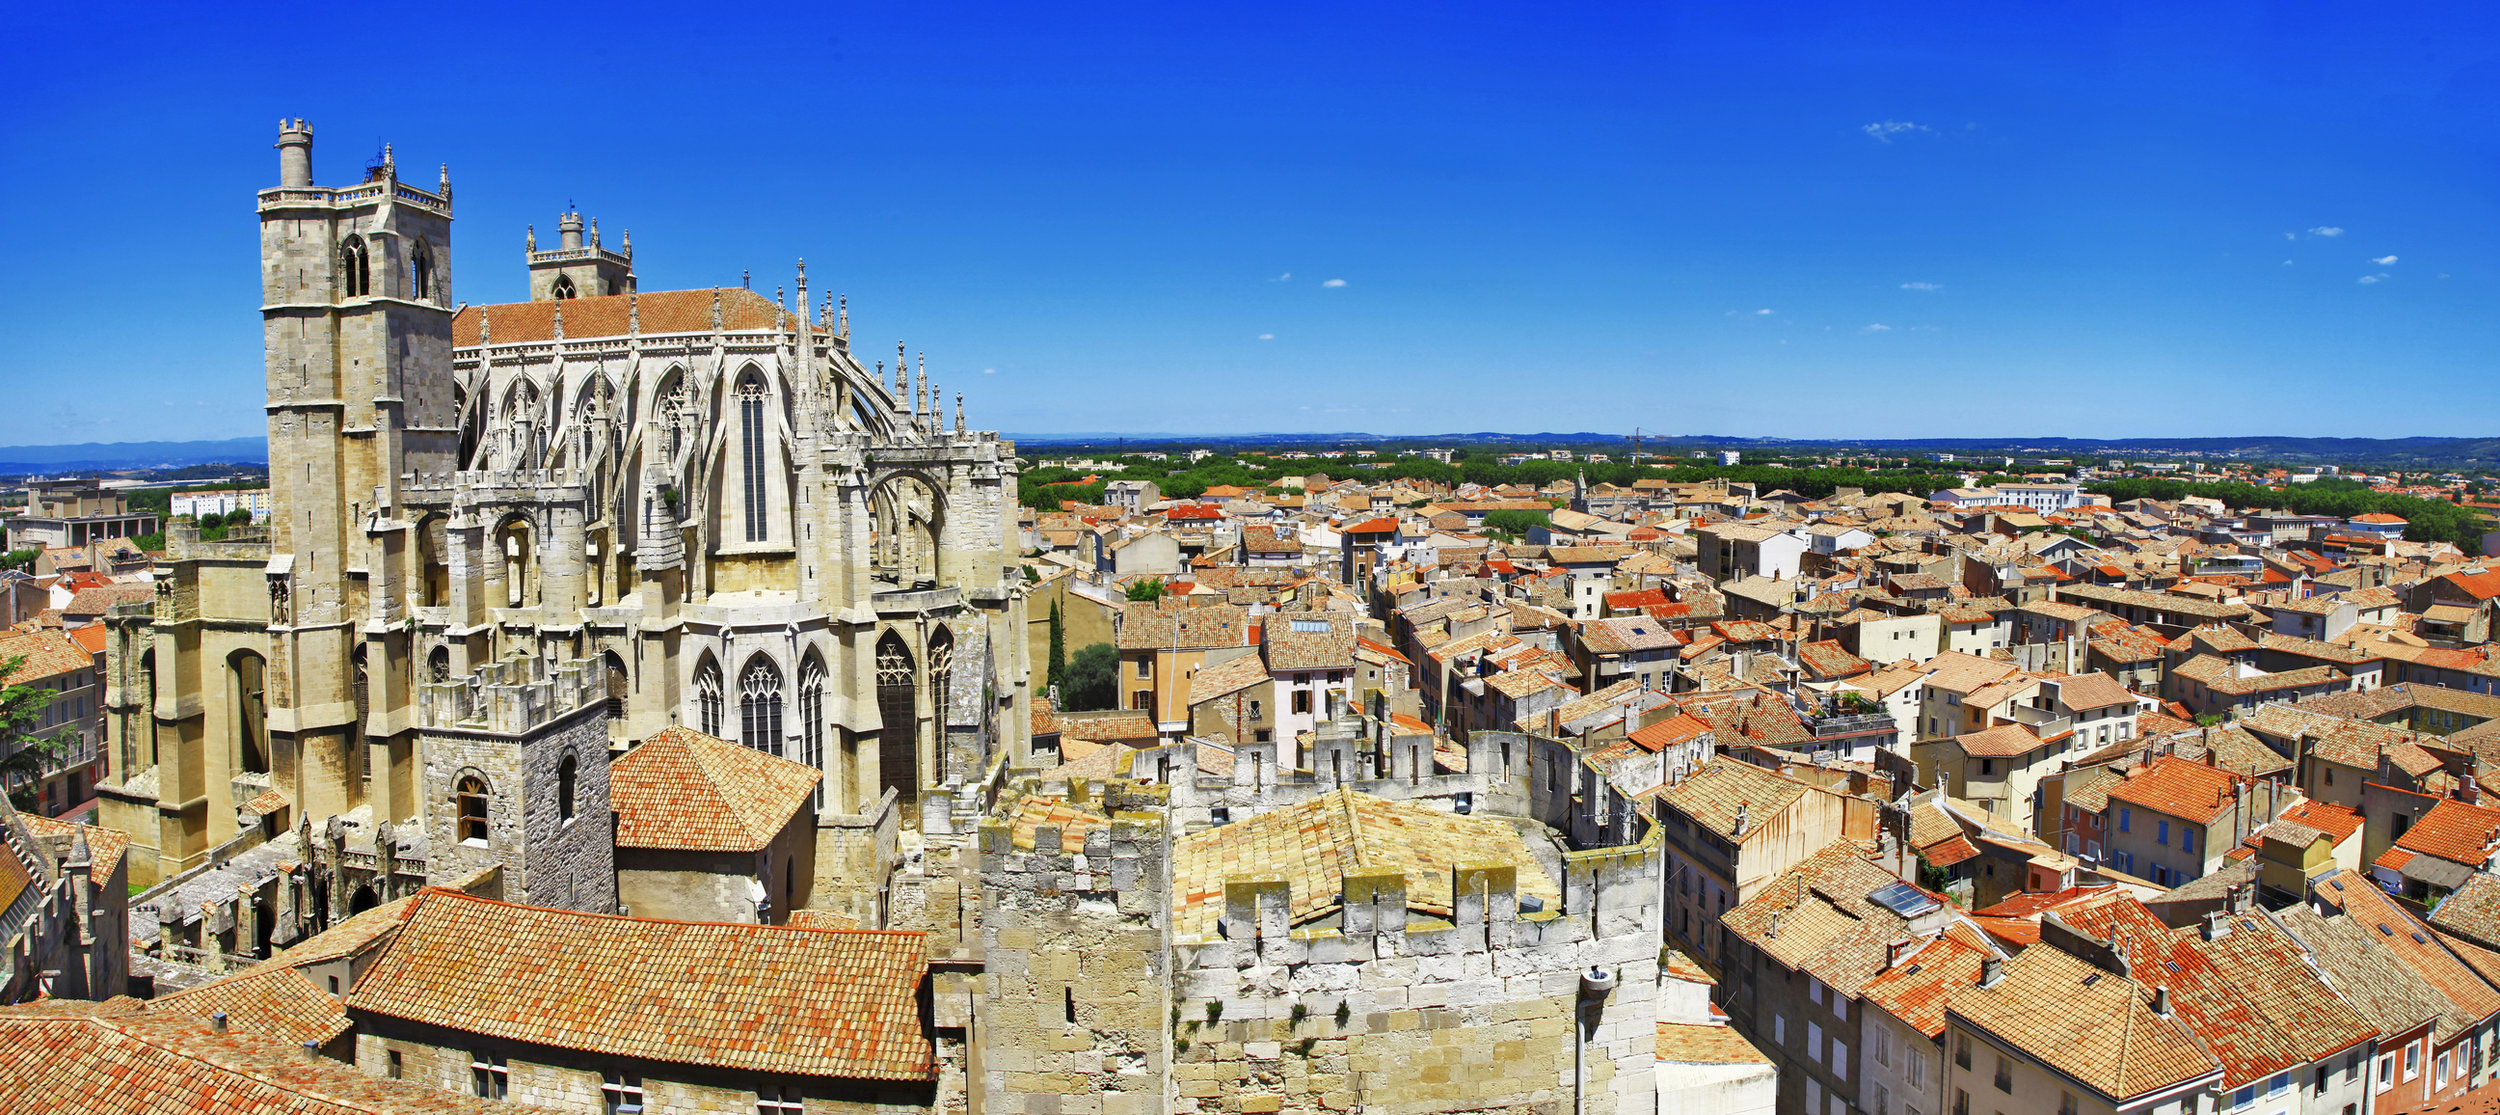 The roman city of Narbonne